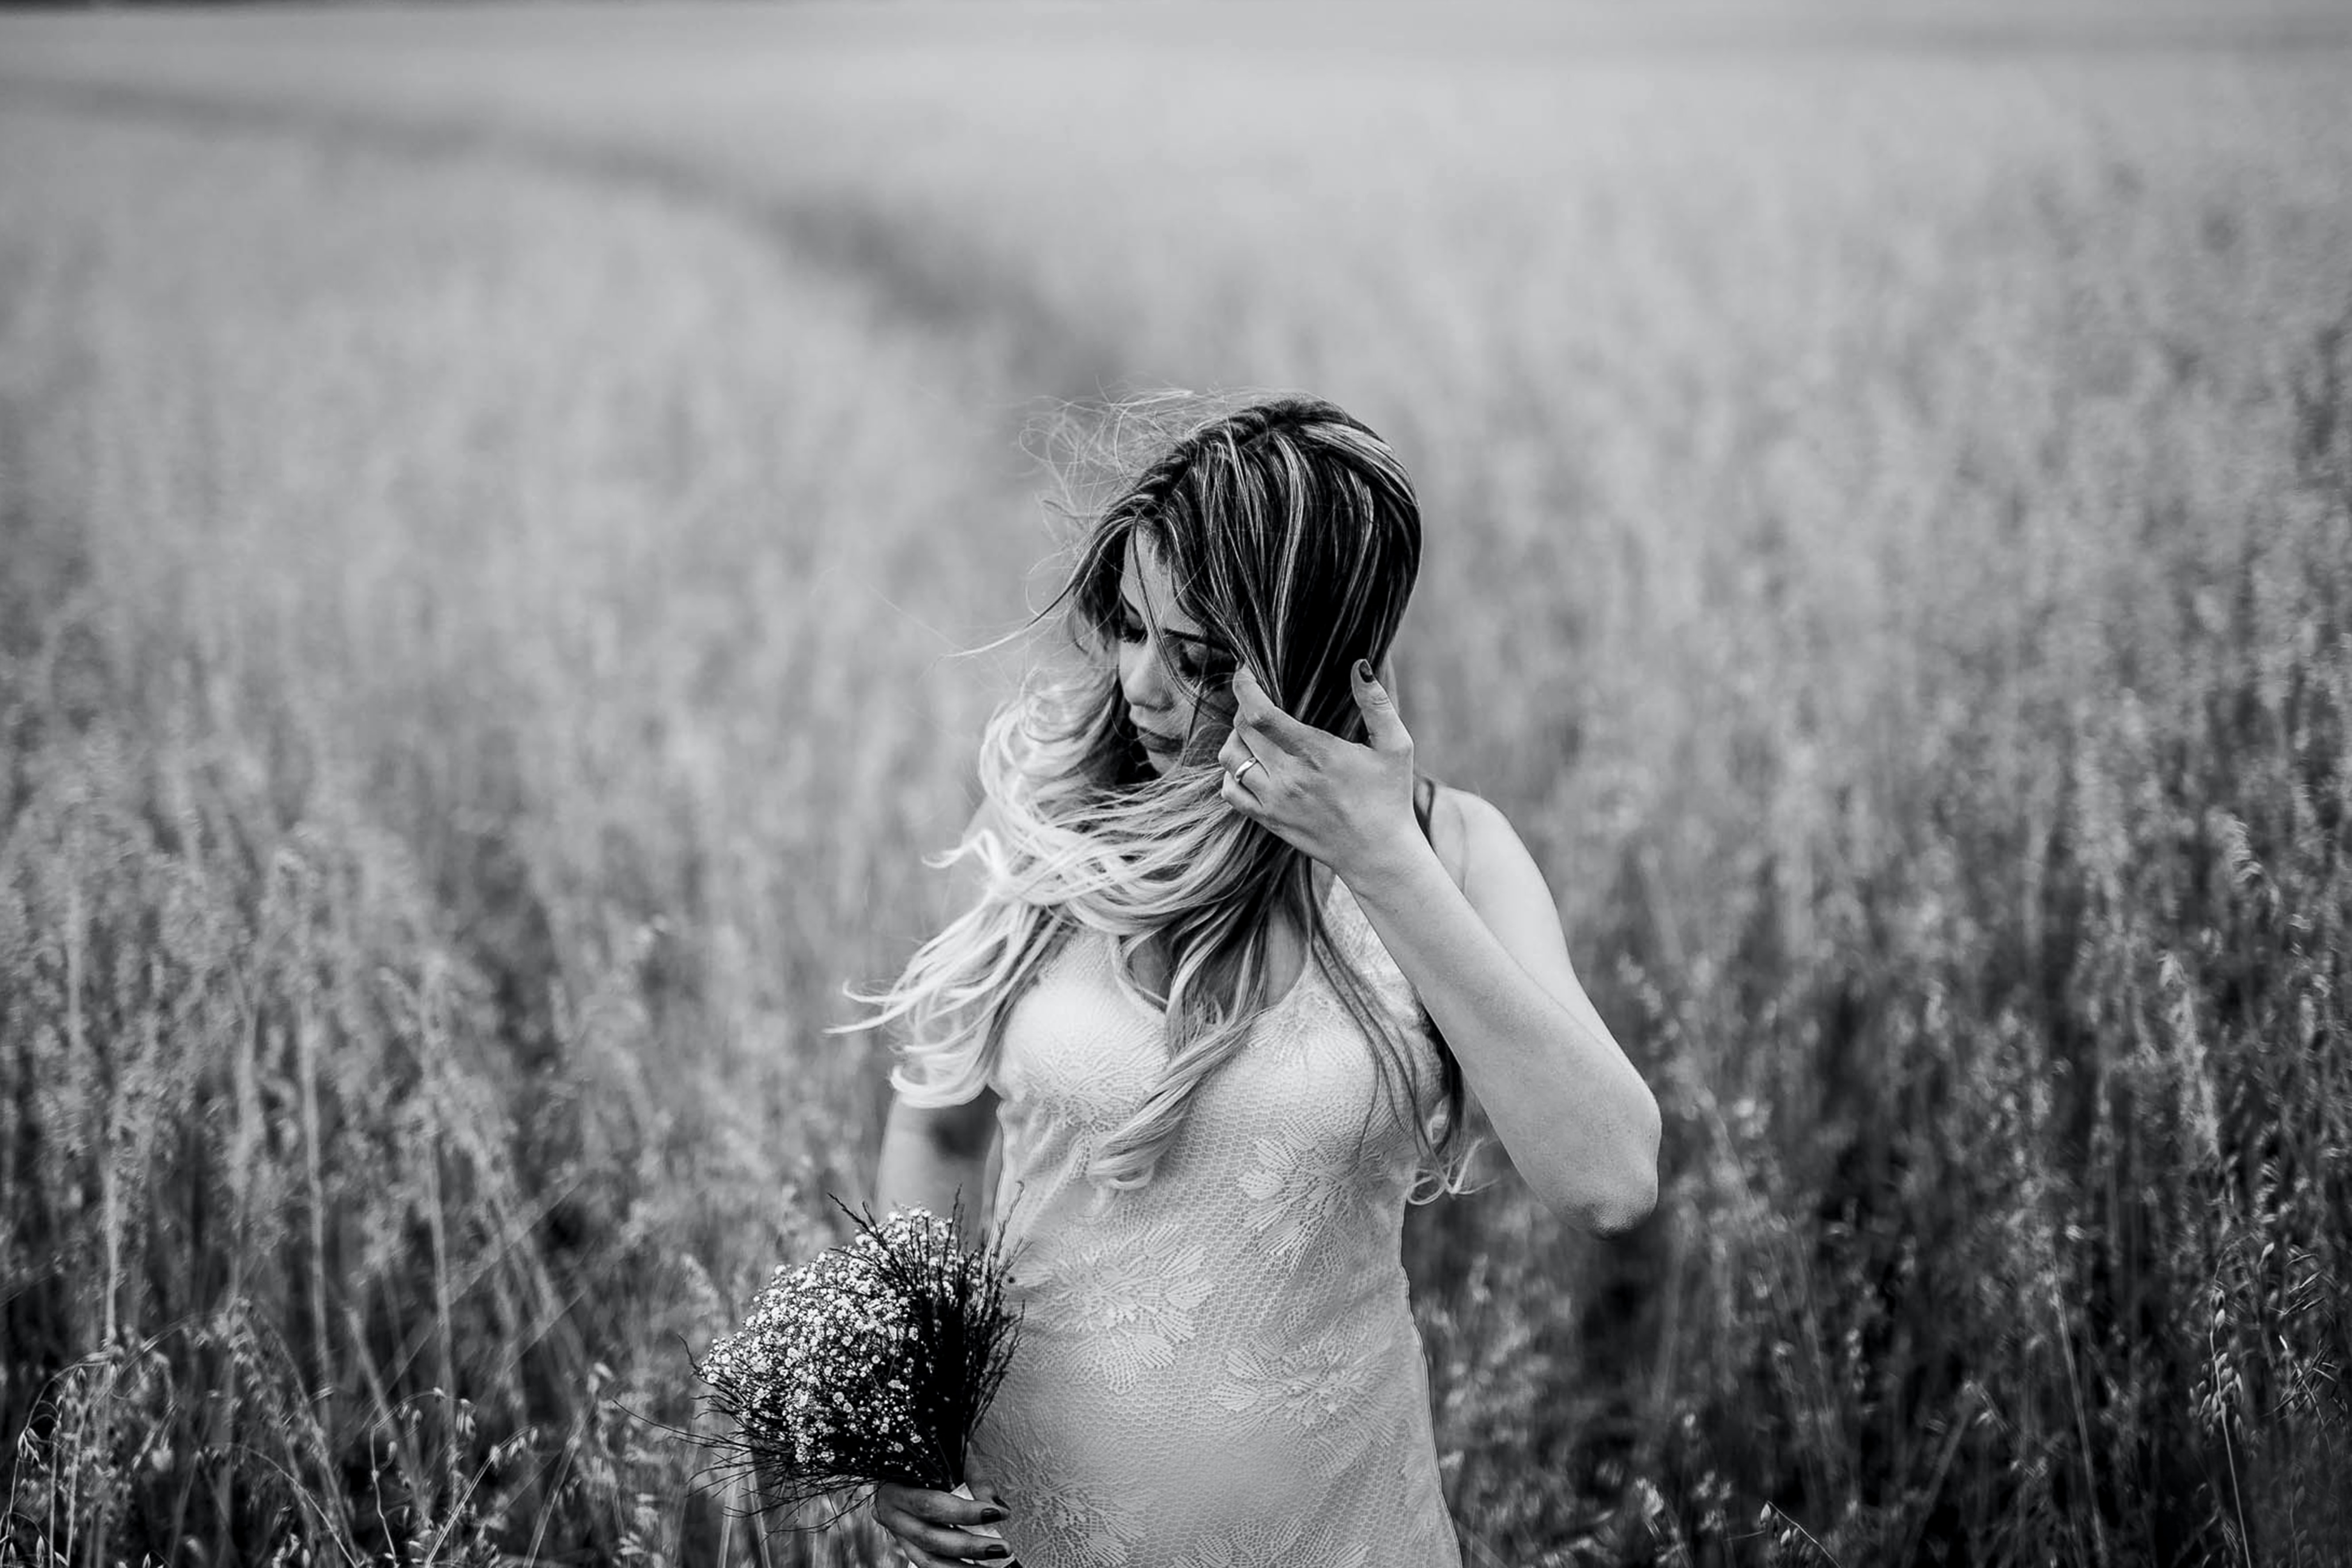 A black-and-white shot of a woman with a floral bouquet brushing back her hair in a field